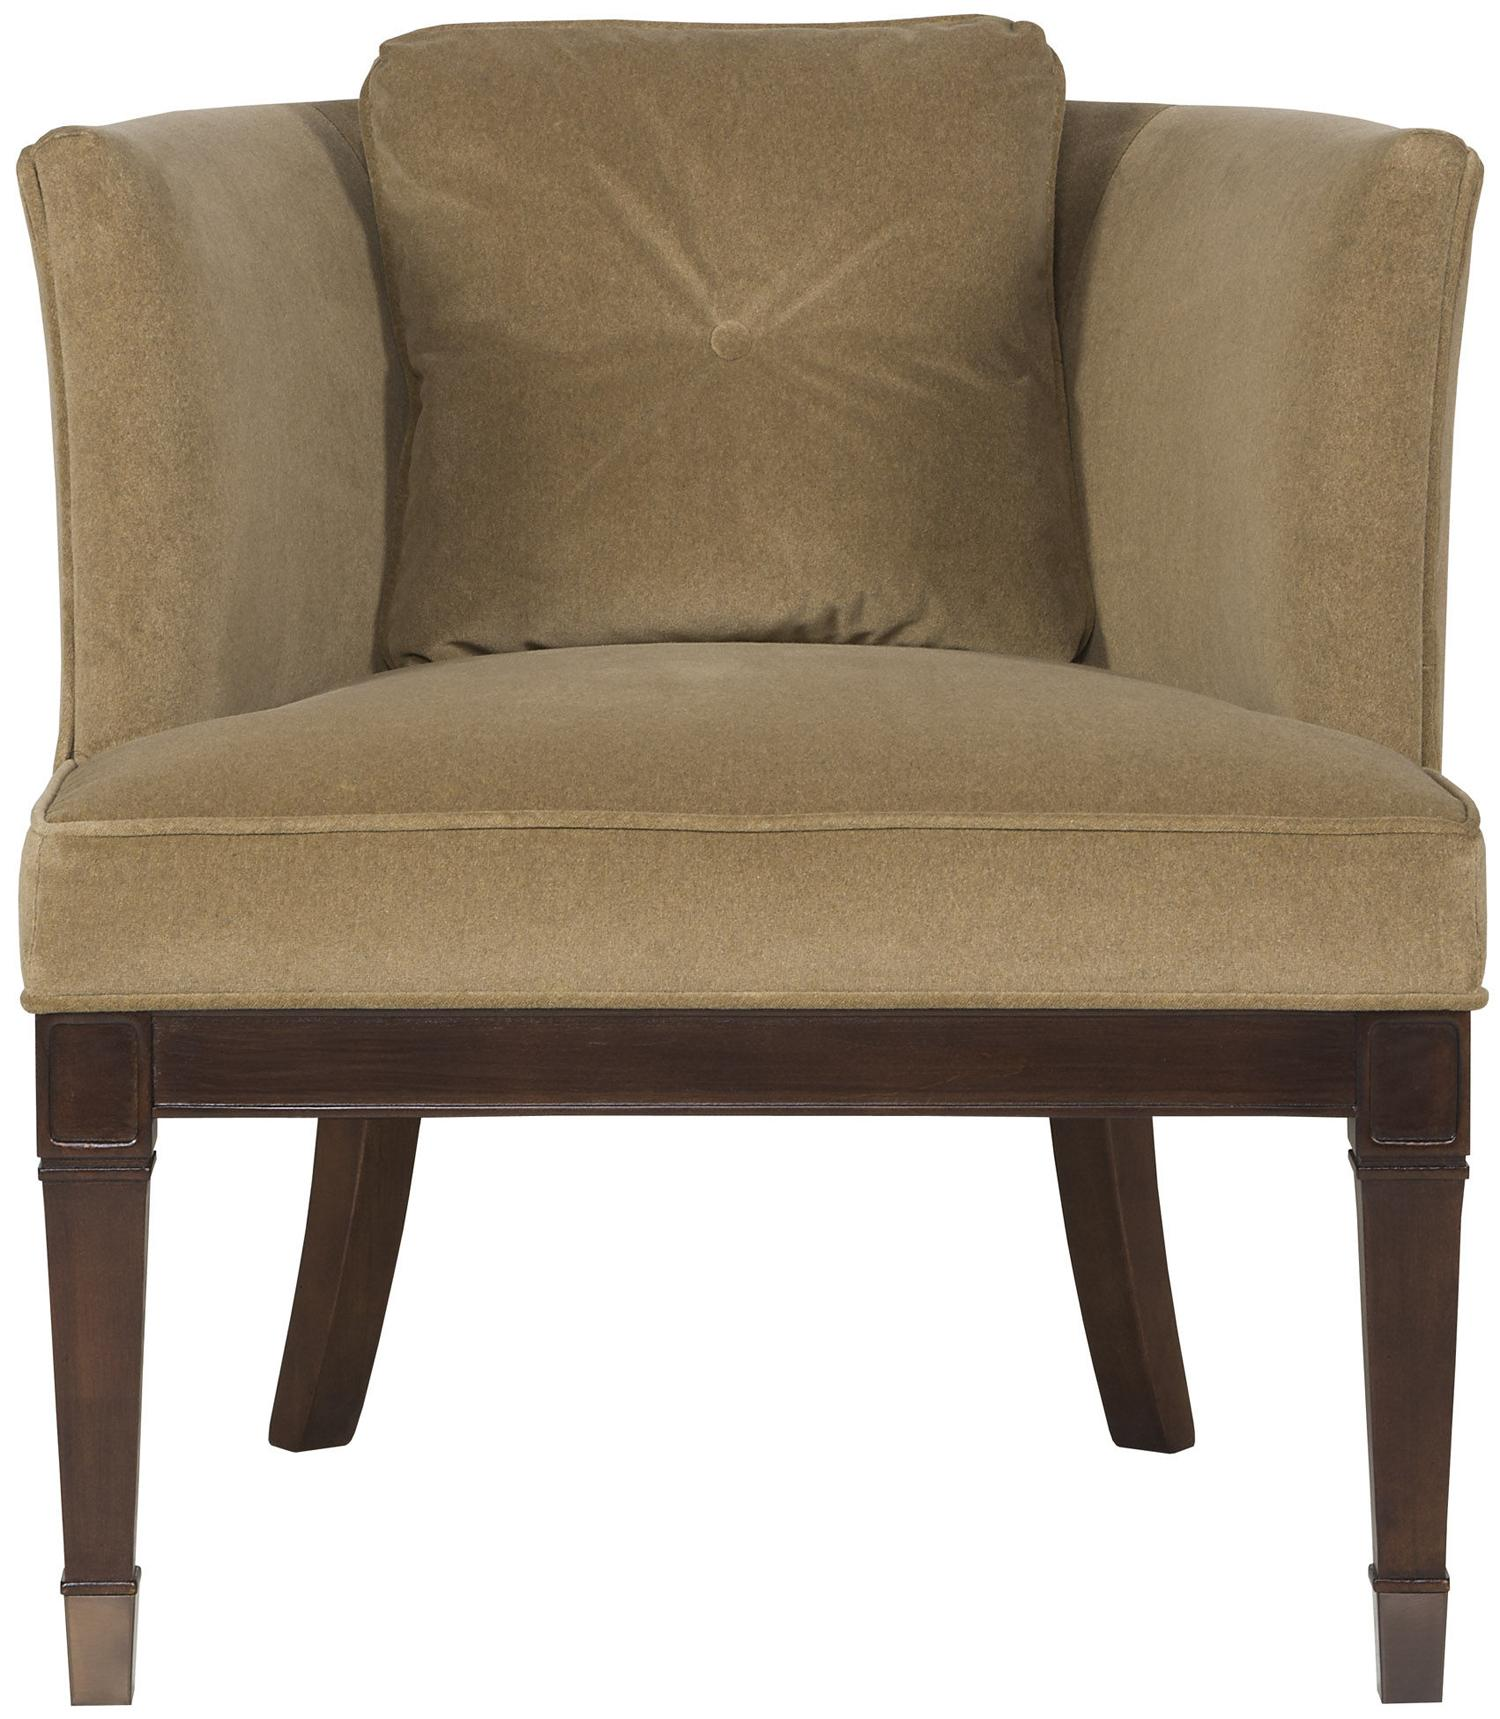 Accent Chairs Chair by Vanguard Furniture at Baer's Furniture